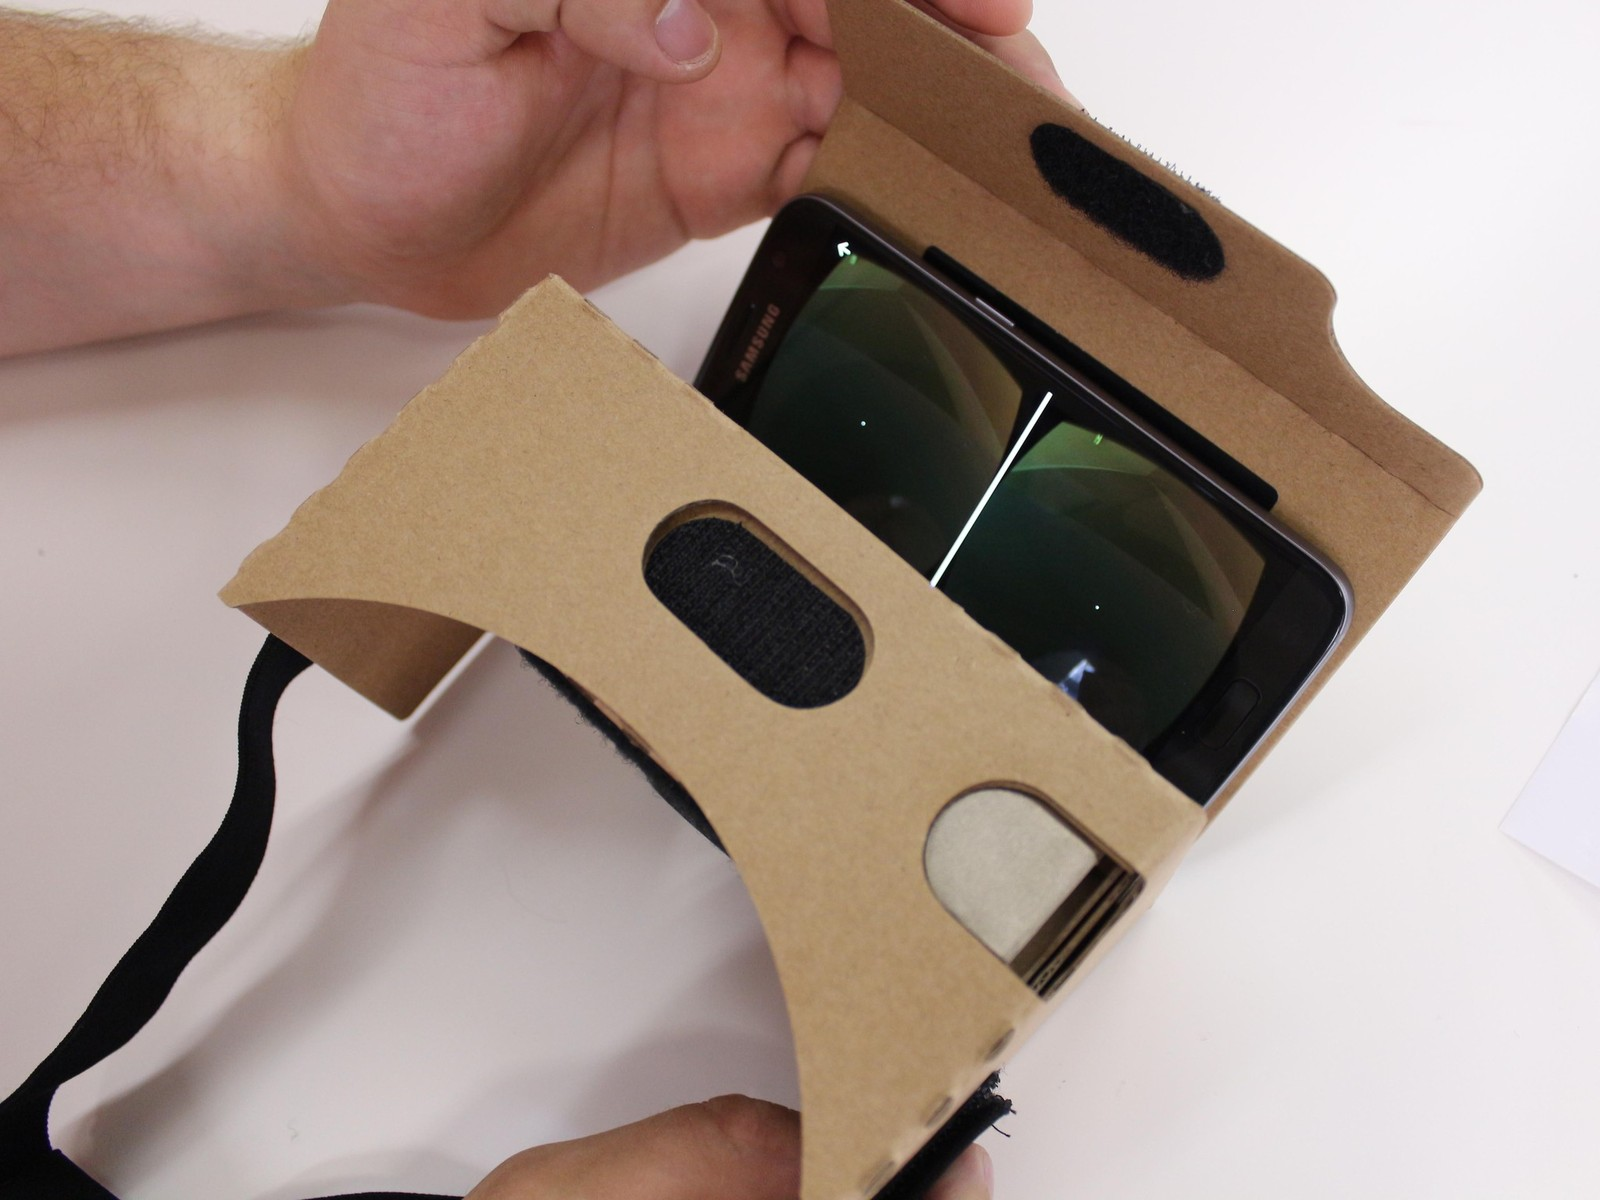 Place your phone in the Cardboard phone holder and you should see the VR display pop up. Seal up the velcro at the top and you're good to go!